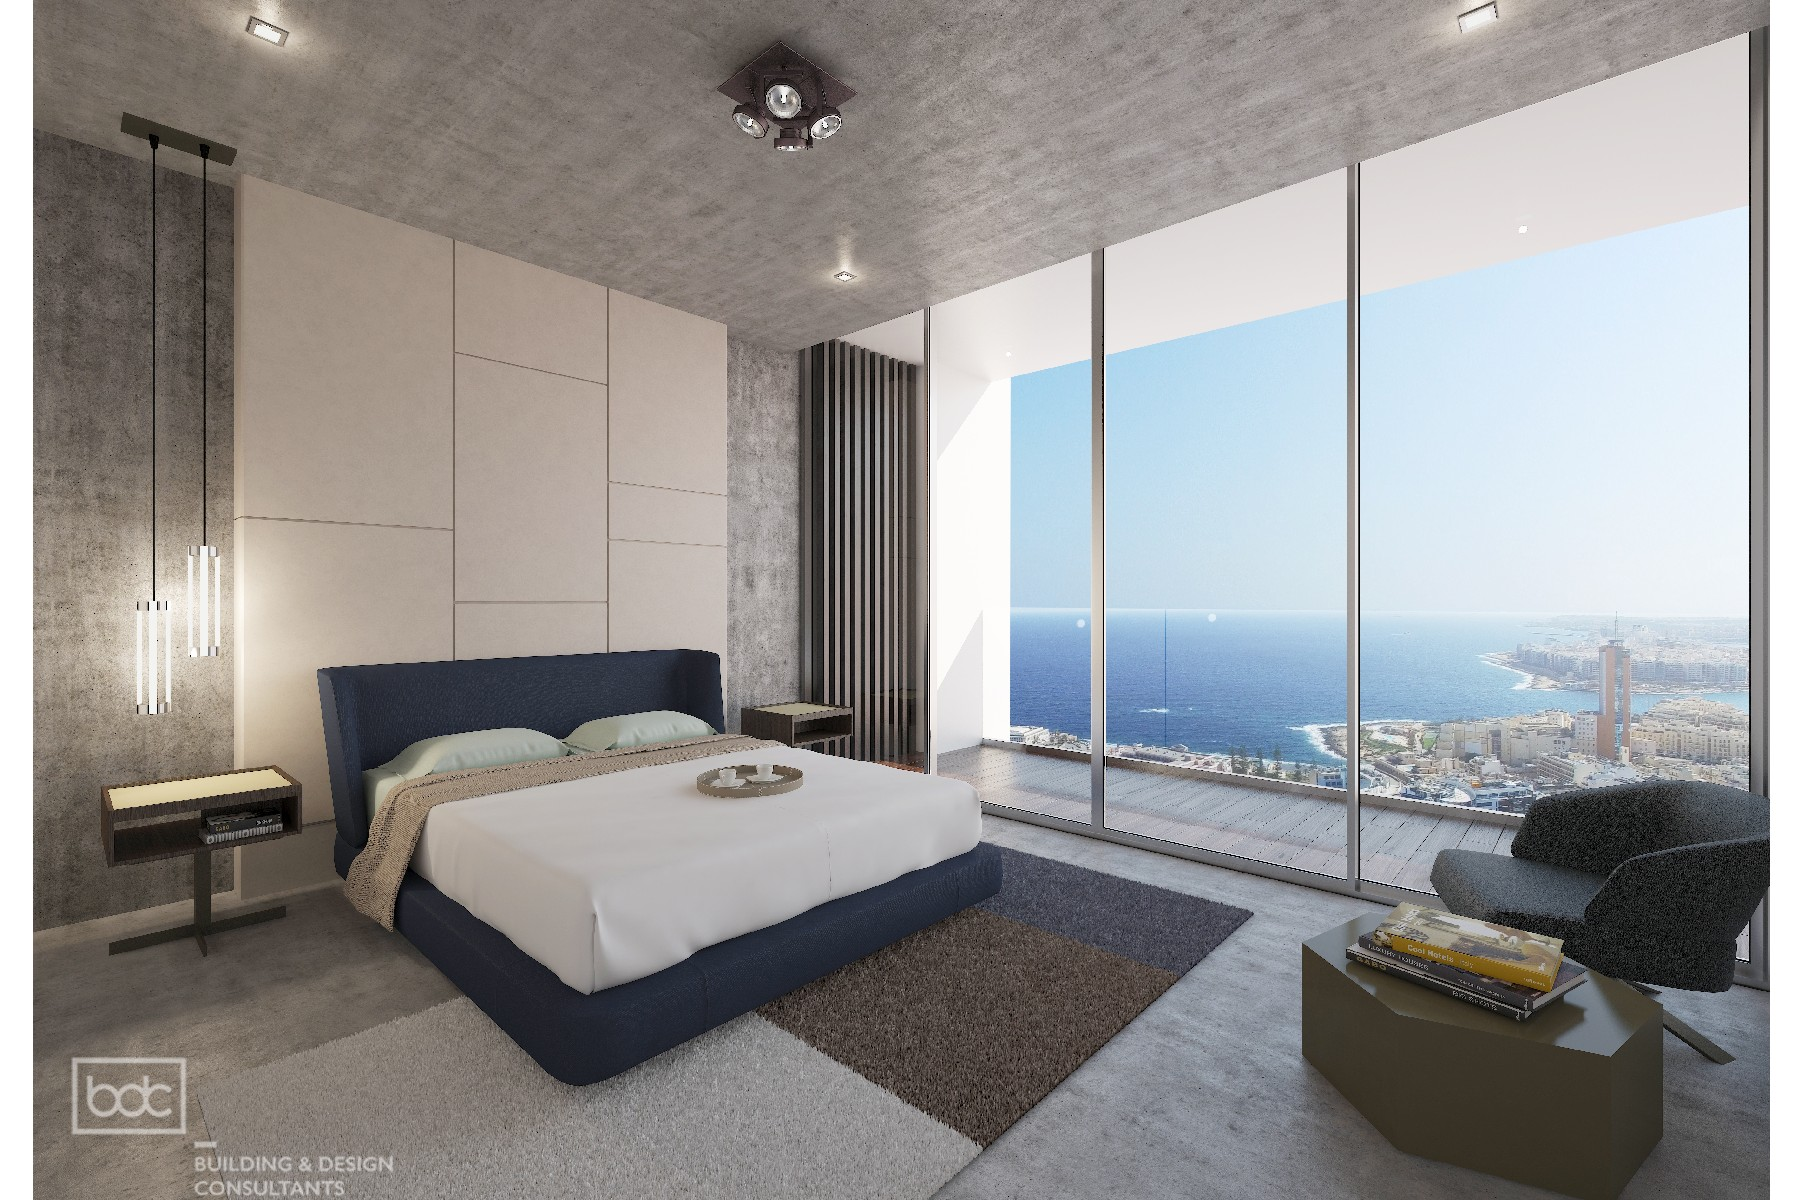 Additional photo for property listing at Lifestyle Apartments St. Julian's, Malta Malta